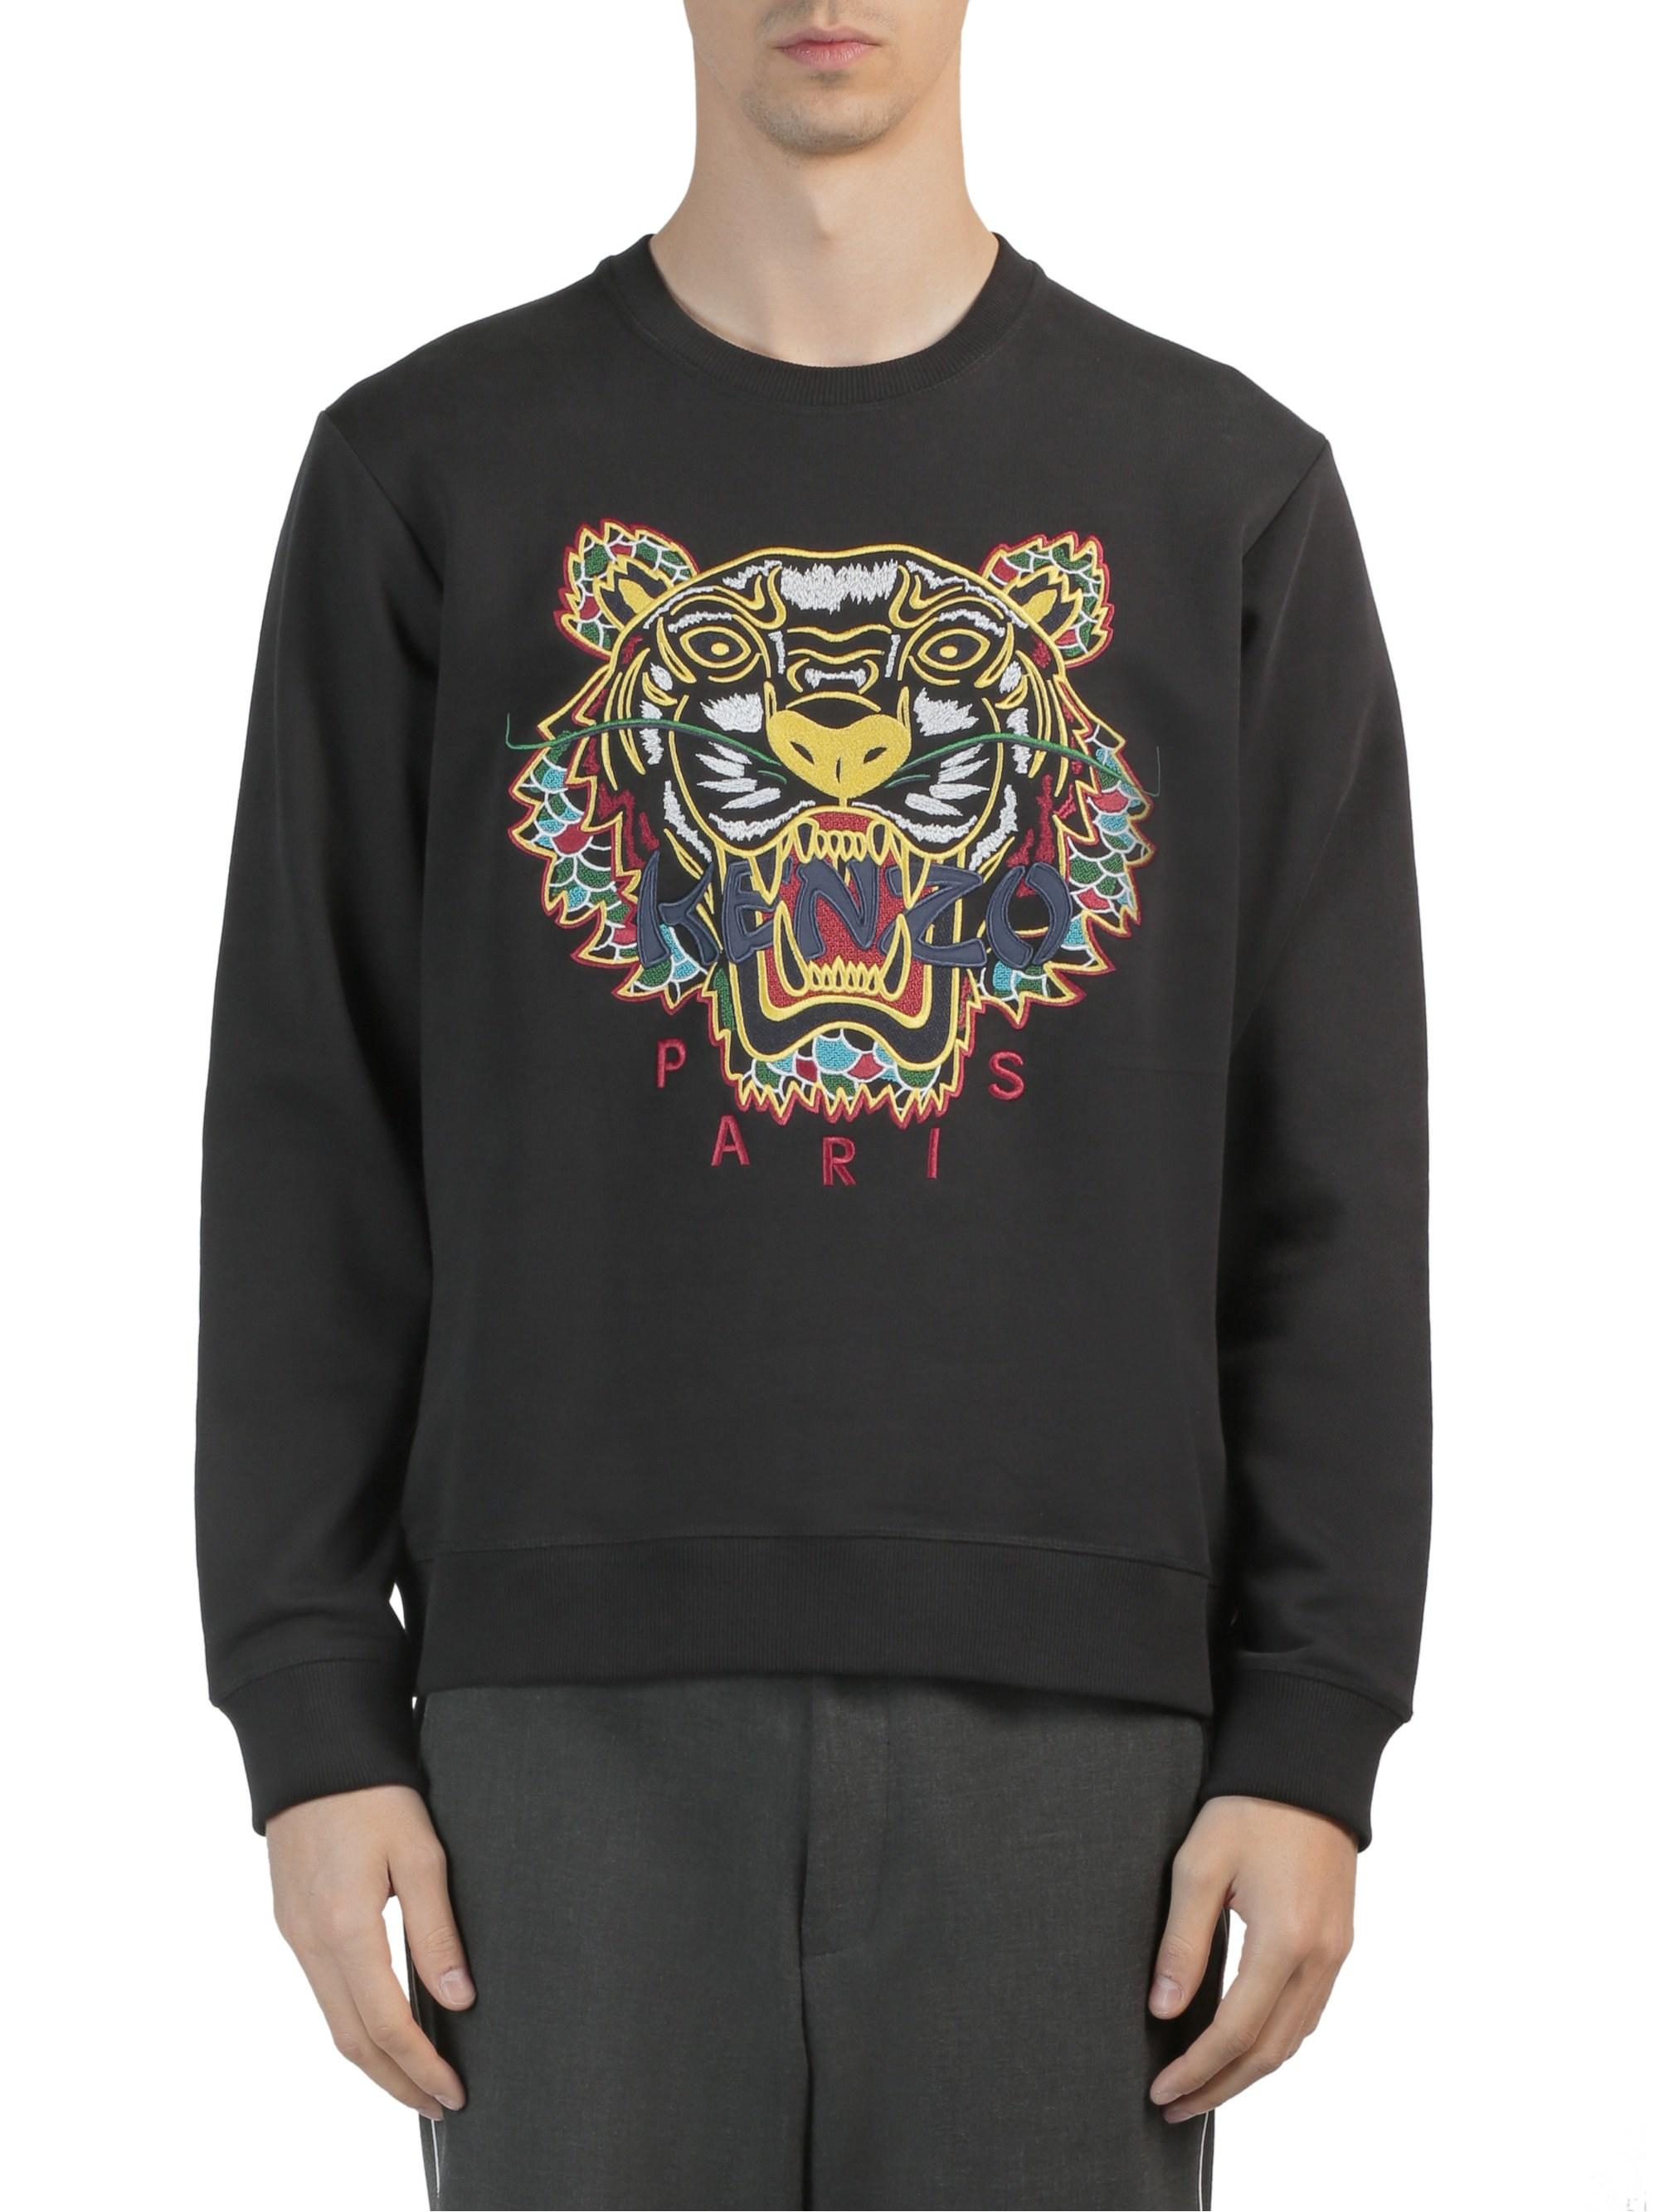 f8ad8b606 KENZO Men's Dragon Tiger Sweatshirt - Black in Black for Men - Lyst